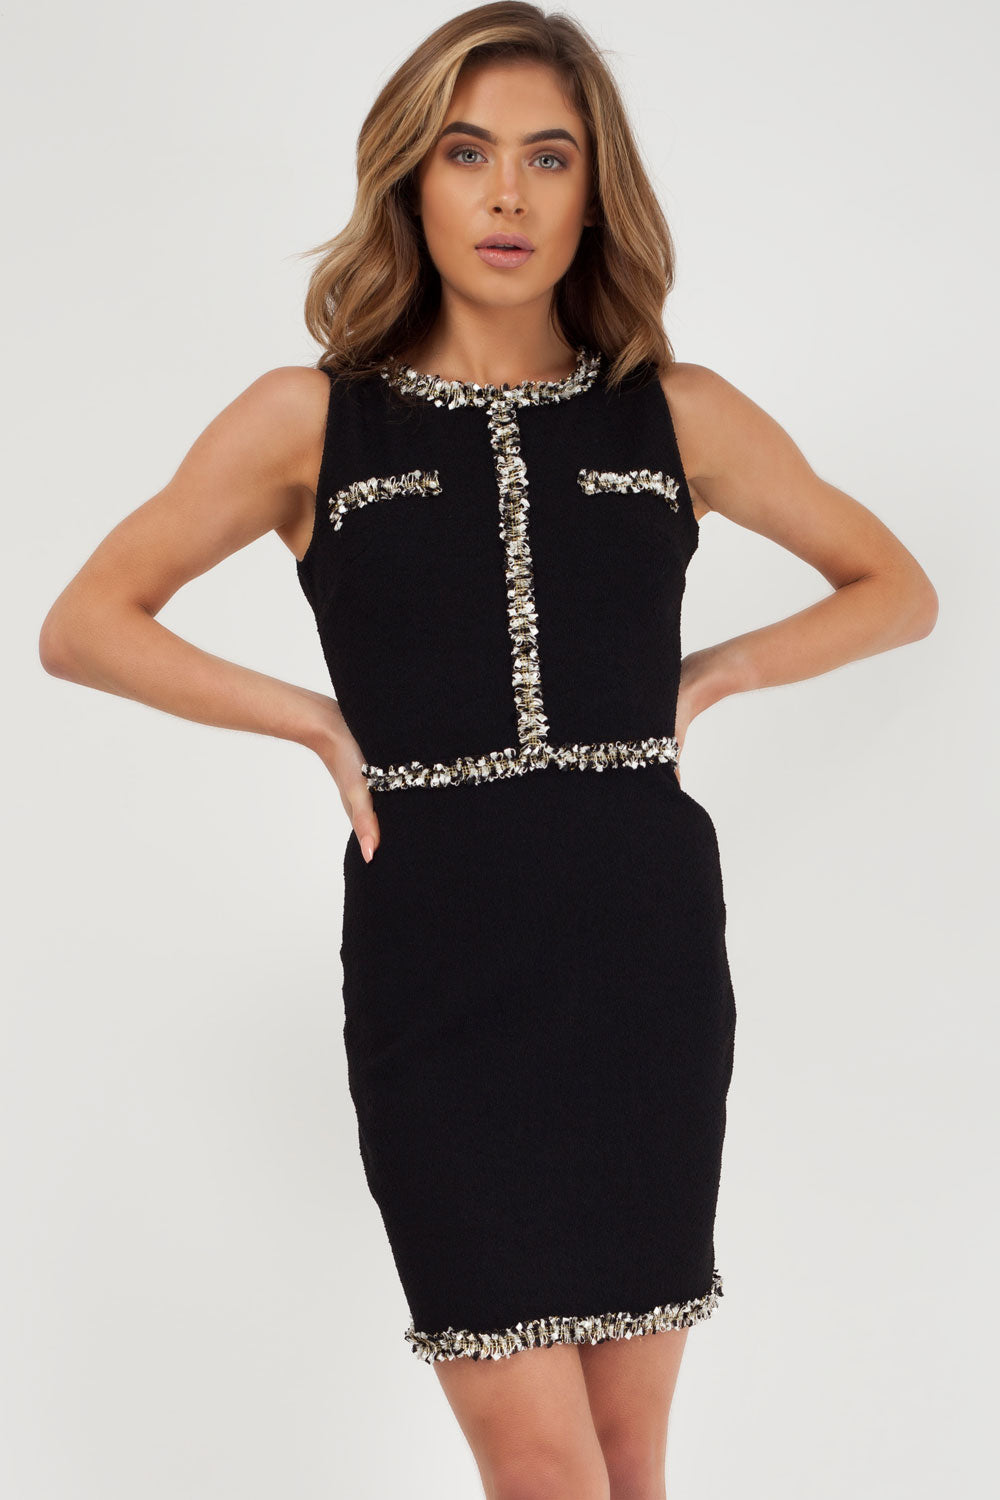 chanel inspired dress black styledup fashion